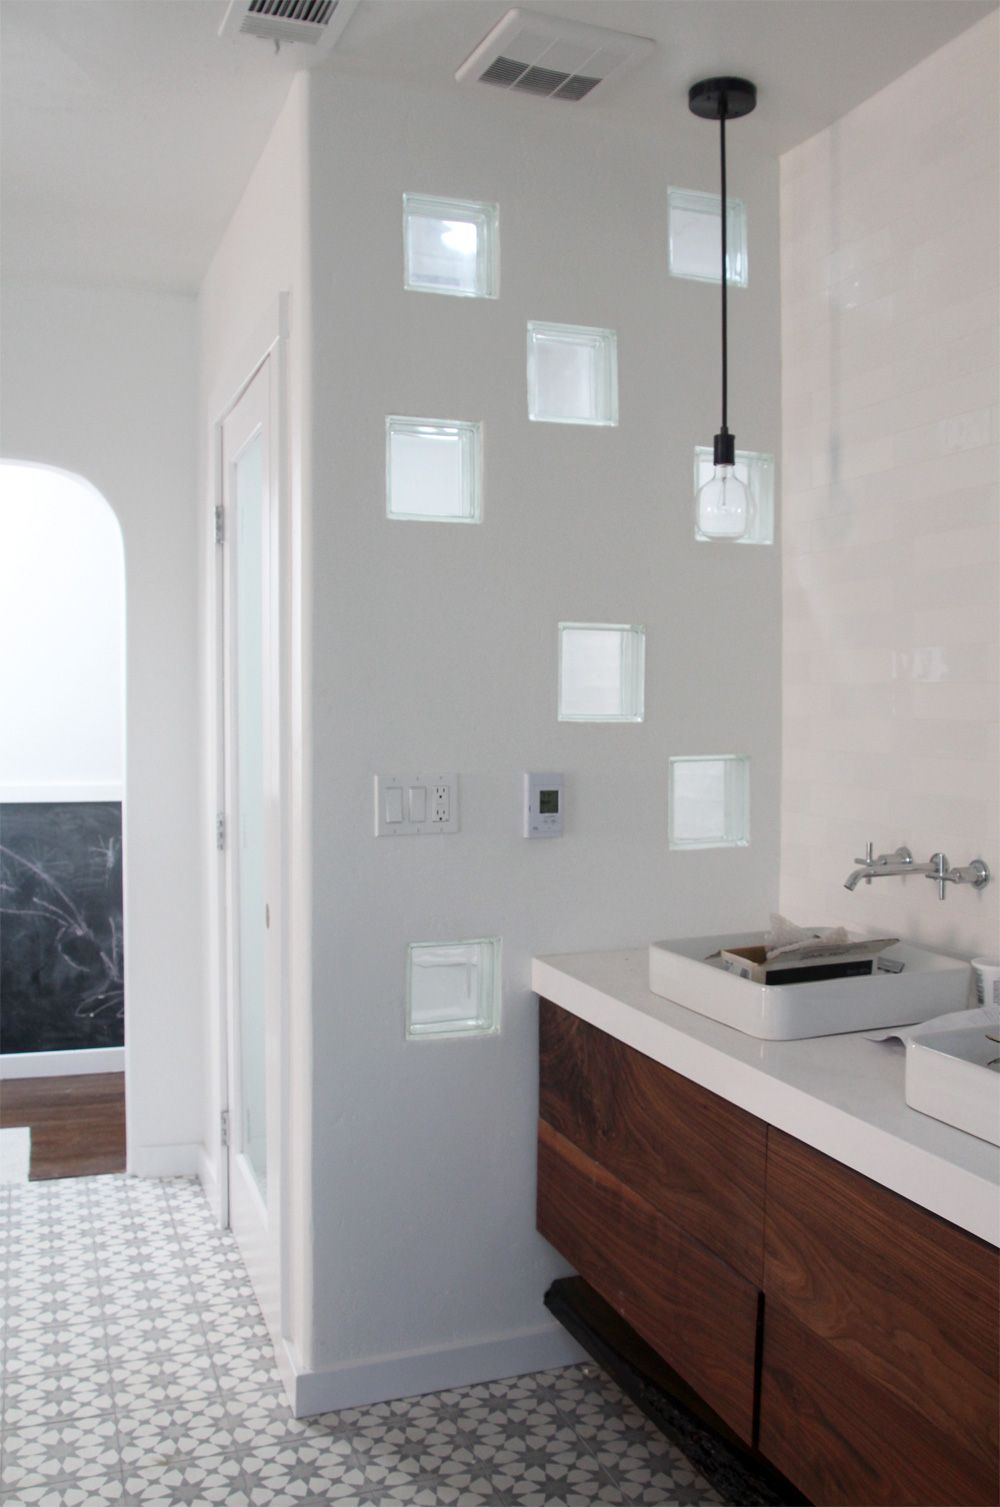 Master bedroom bathroom  Master Bedroom u Bathroom Remodel Week   Bathrooms  Pinterest